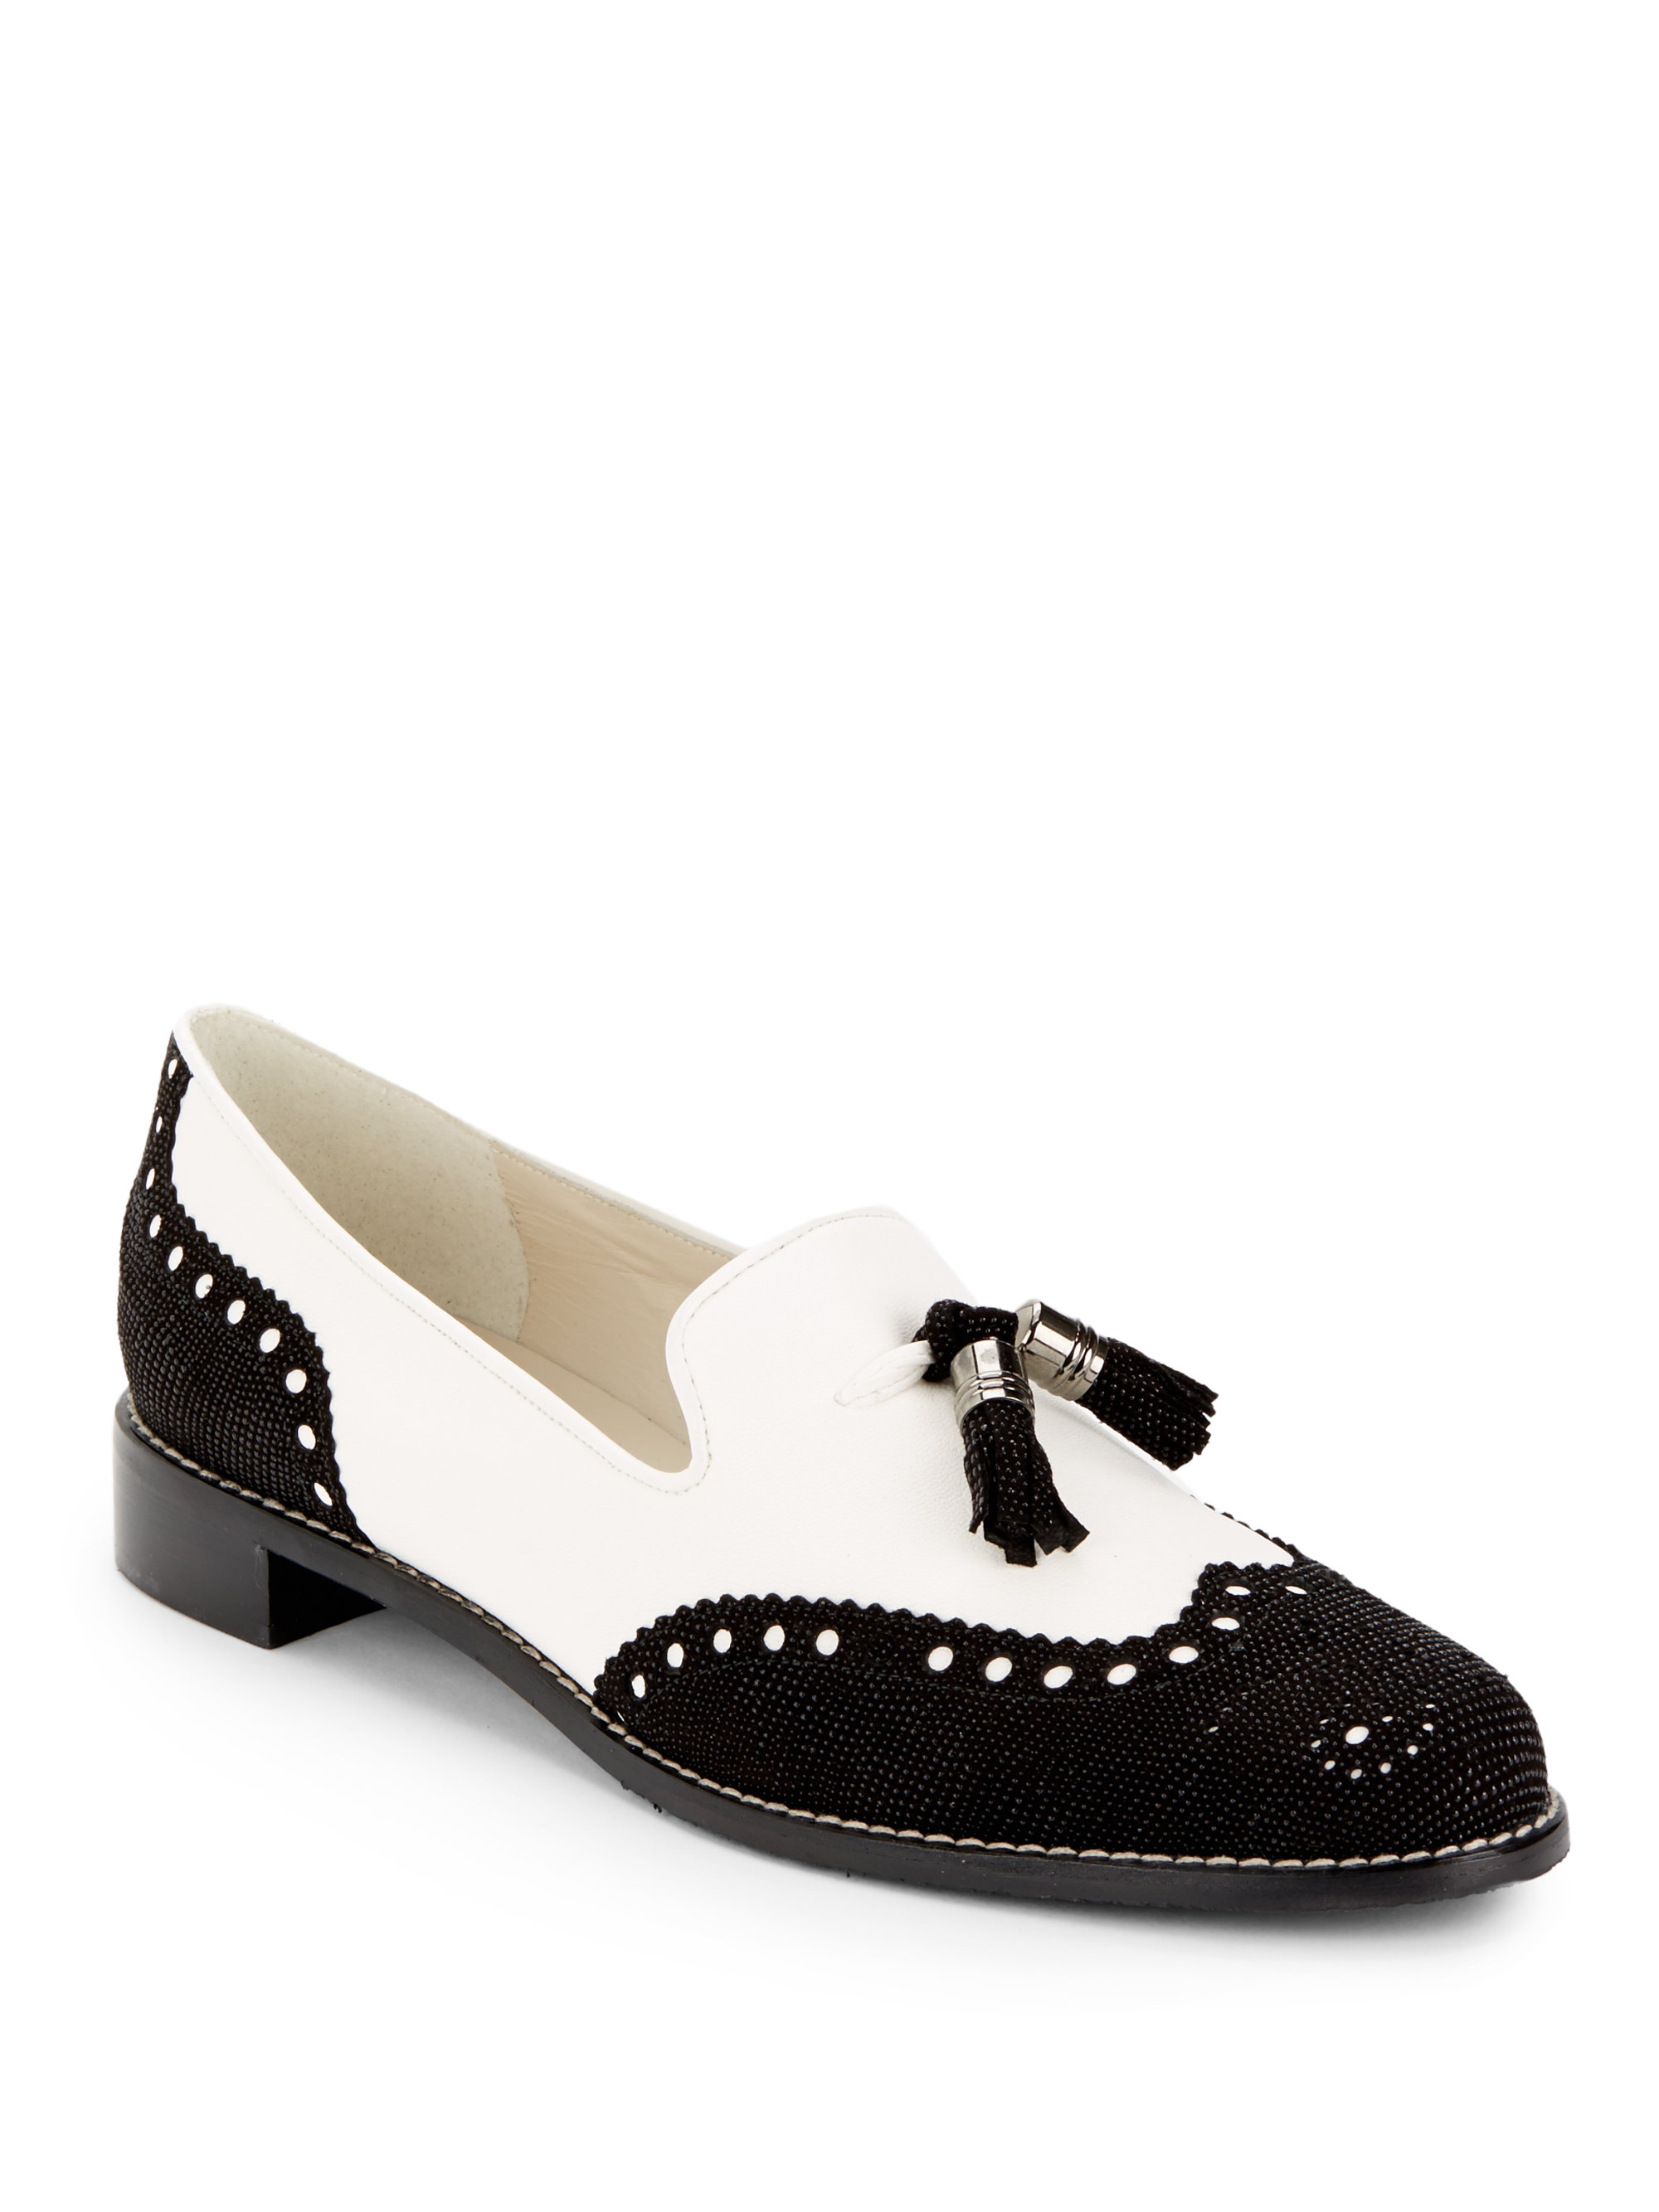 lyst stuart weitzman guything brogue loafers in white